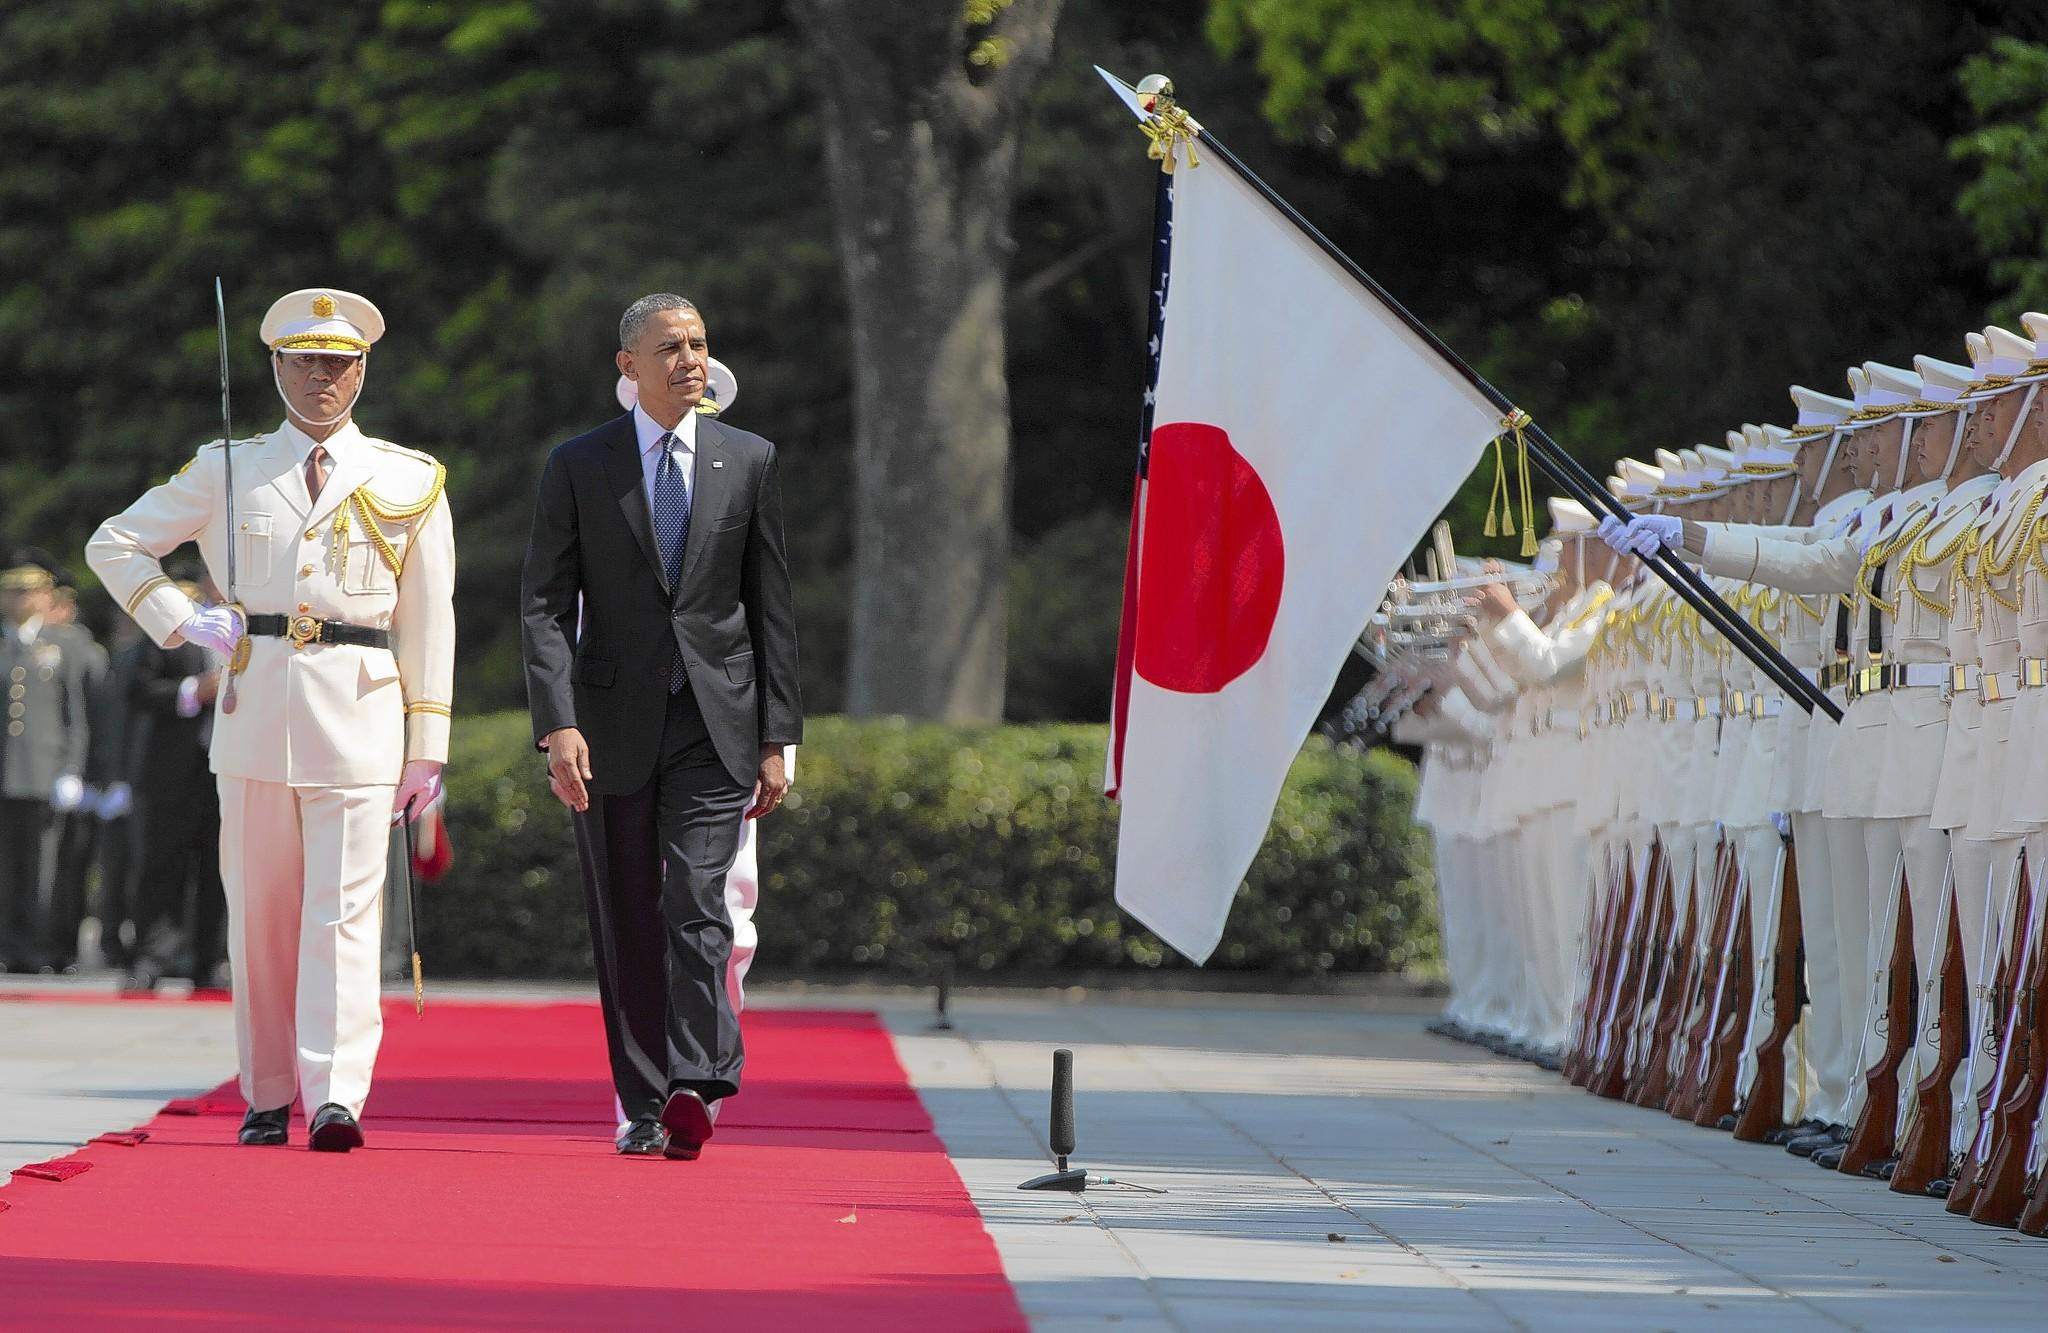 President Obama reviews troops during a welcome ceremony at the Imperial Palace in Tokyo on Thursday.